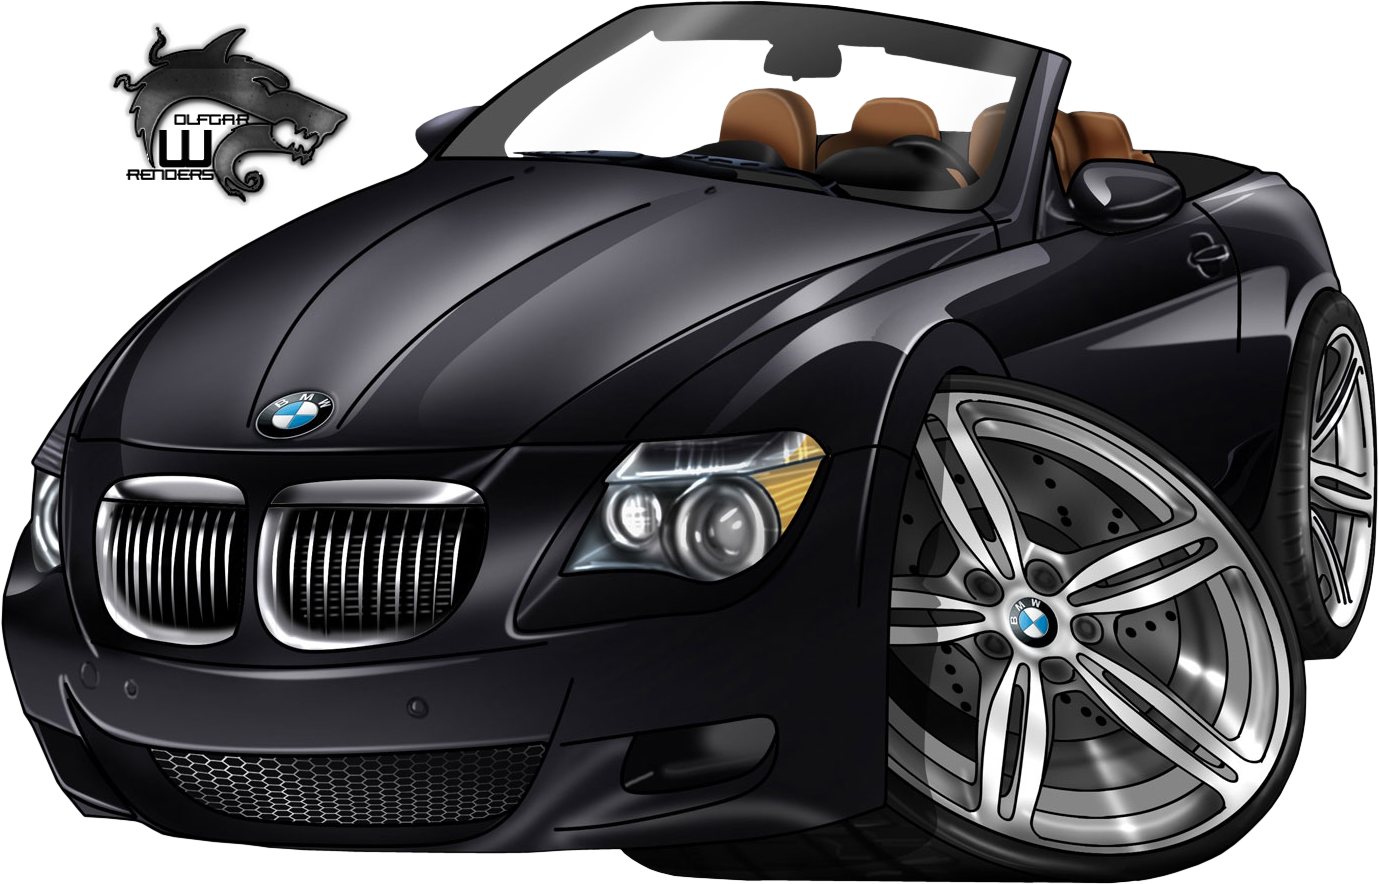 Car cartoon png. Home bmw pictures free